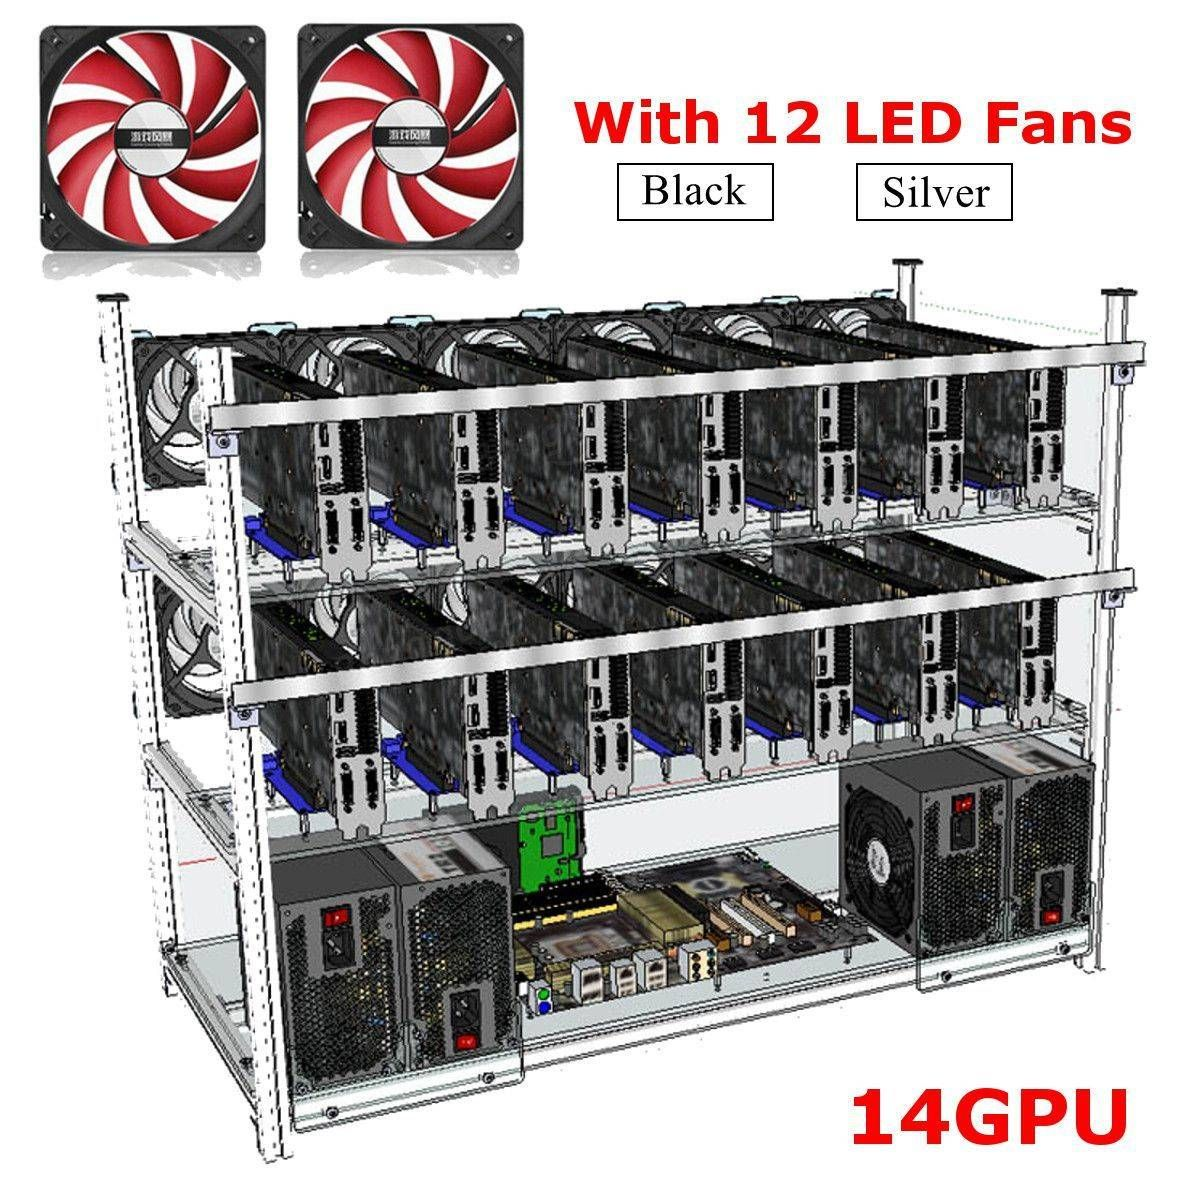 Open Air Mining Frame Rig 14 Gpu Stackable Case With 12 Led Fans For Eth Zcash Electrical Equipment Supplies From Tools Industrial Scientific On Banggood C Led Open Air Stackable